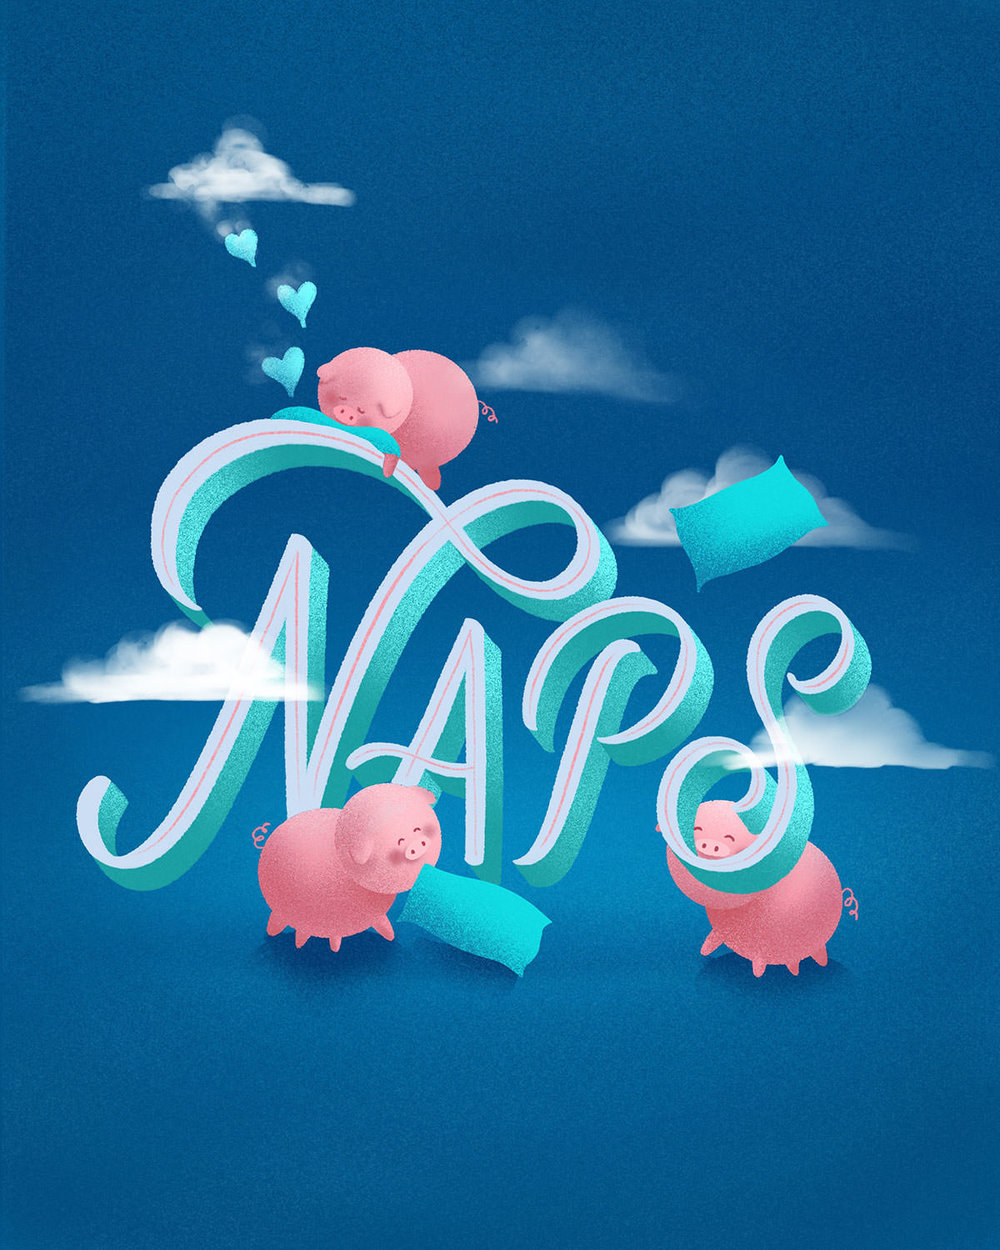 naps-and-pigs-lettering-illustration